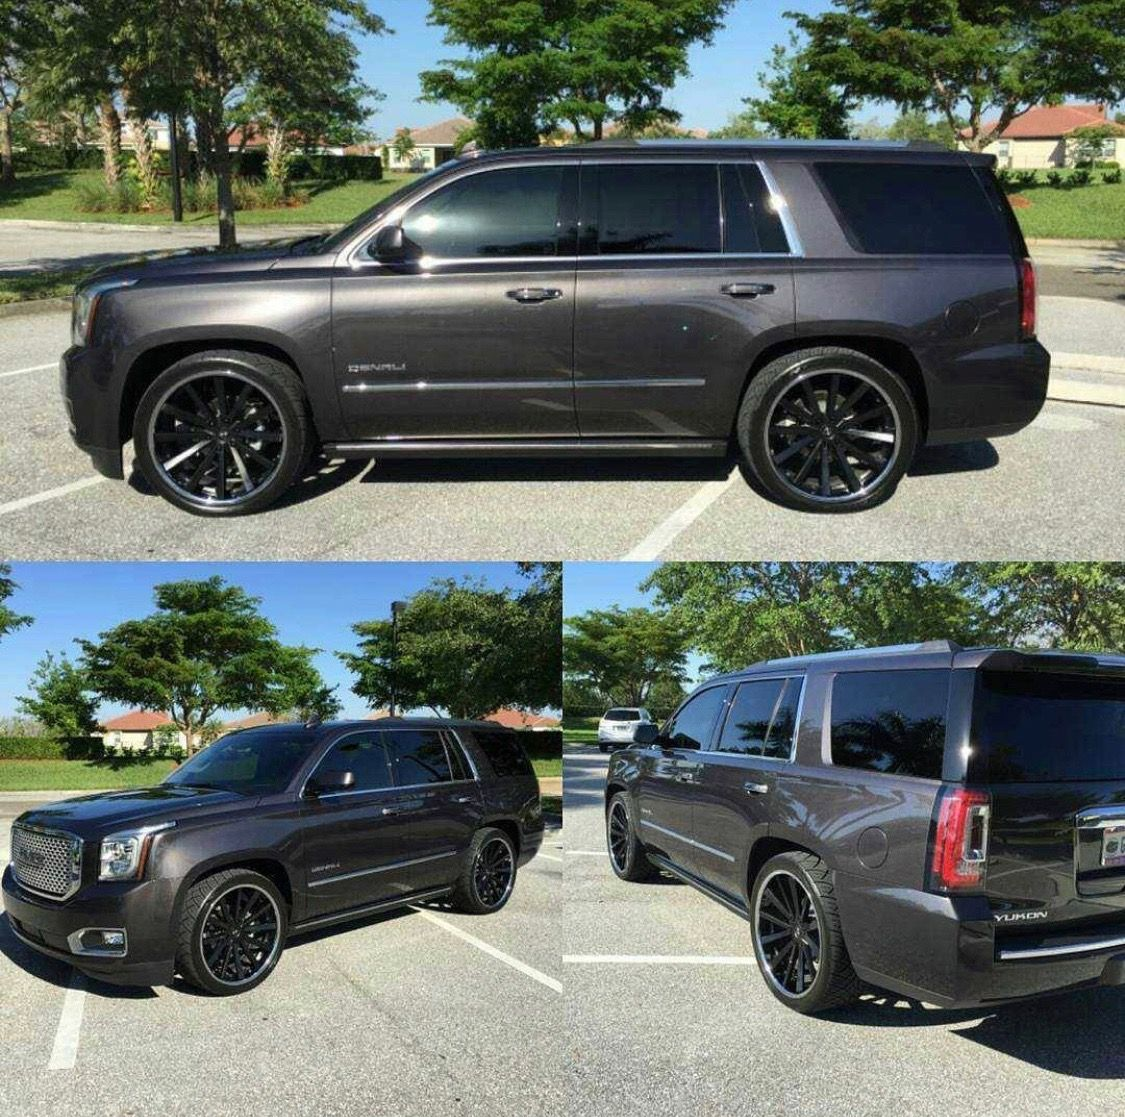 Charcoal Grey Yukon Denali All Angles Yukon Denali Gmc Trucks Gmc Yukon